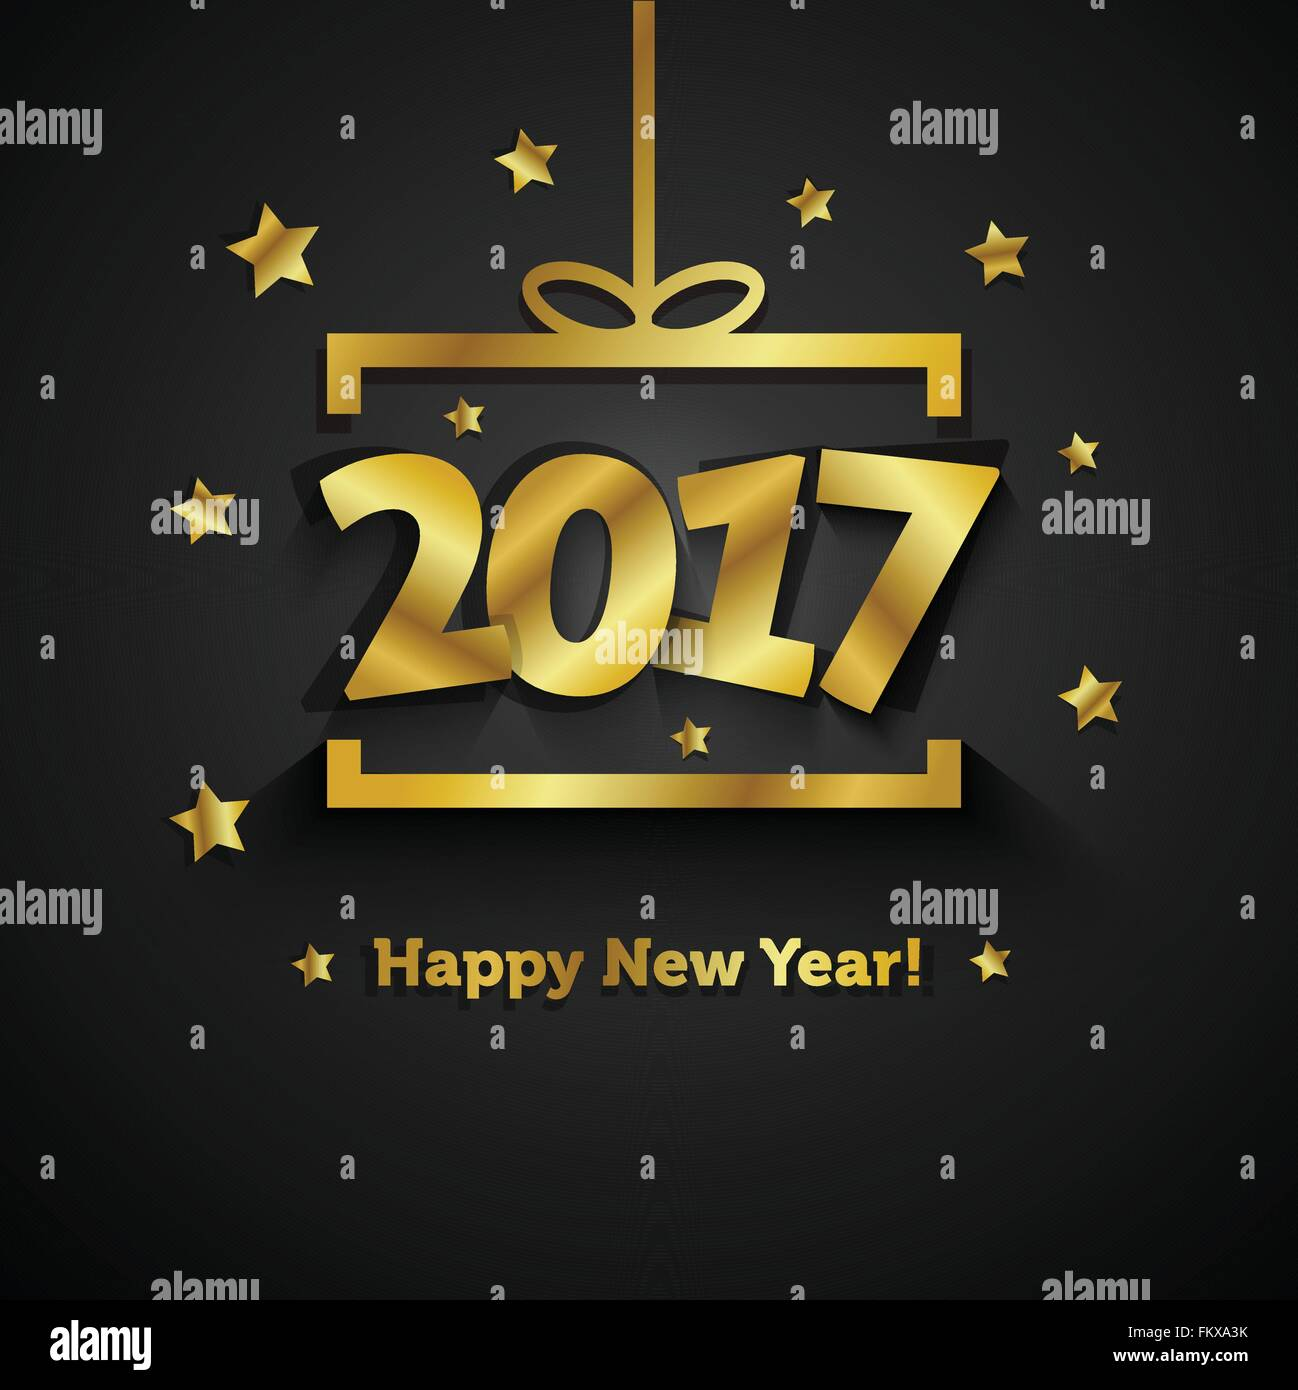 Golden gift box with 2017 happy new year greeting card stock vector golden gift box with 2017 happy new year greeting card kristyandbryce Images